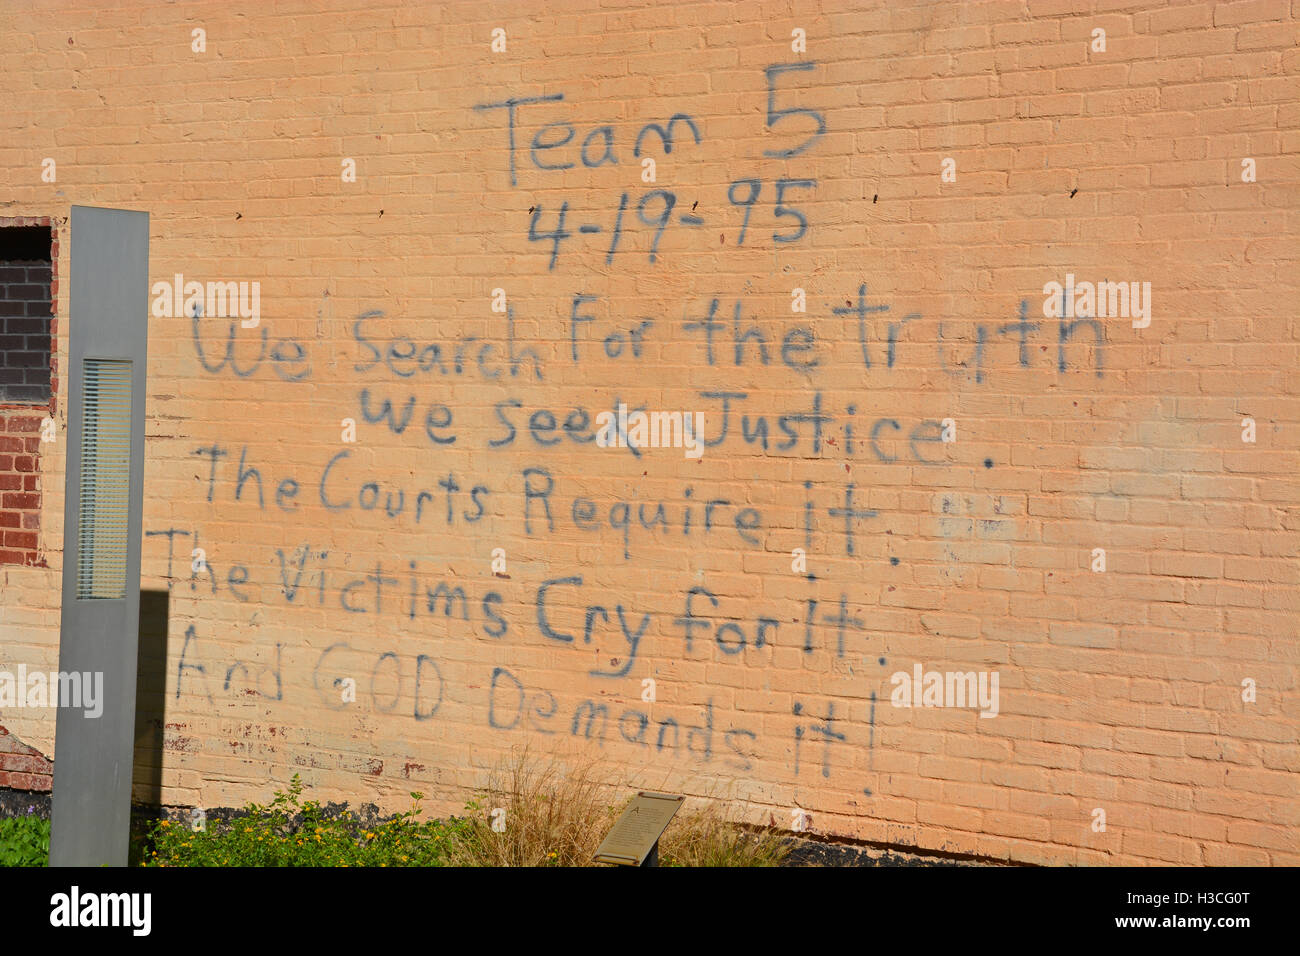 Message spray painted by rescuers on the wall of the Journal Record Building the day of the Oklahoma City bombing - Stock Image